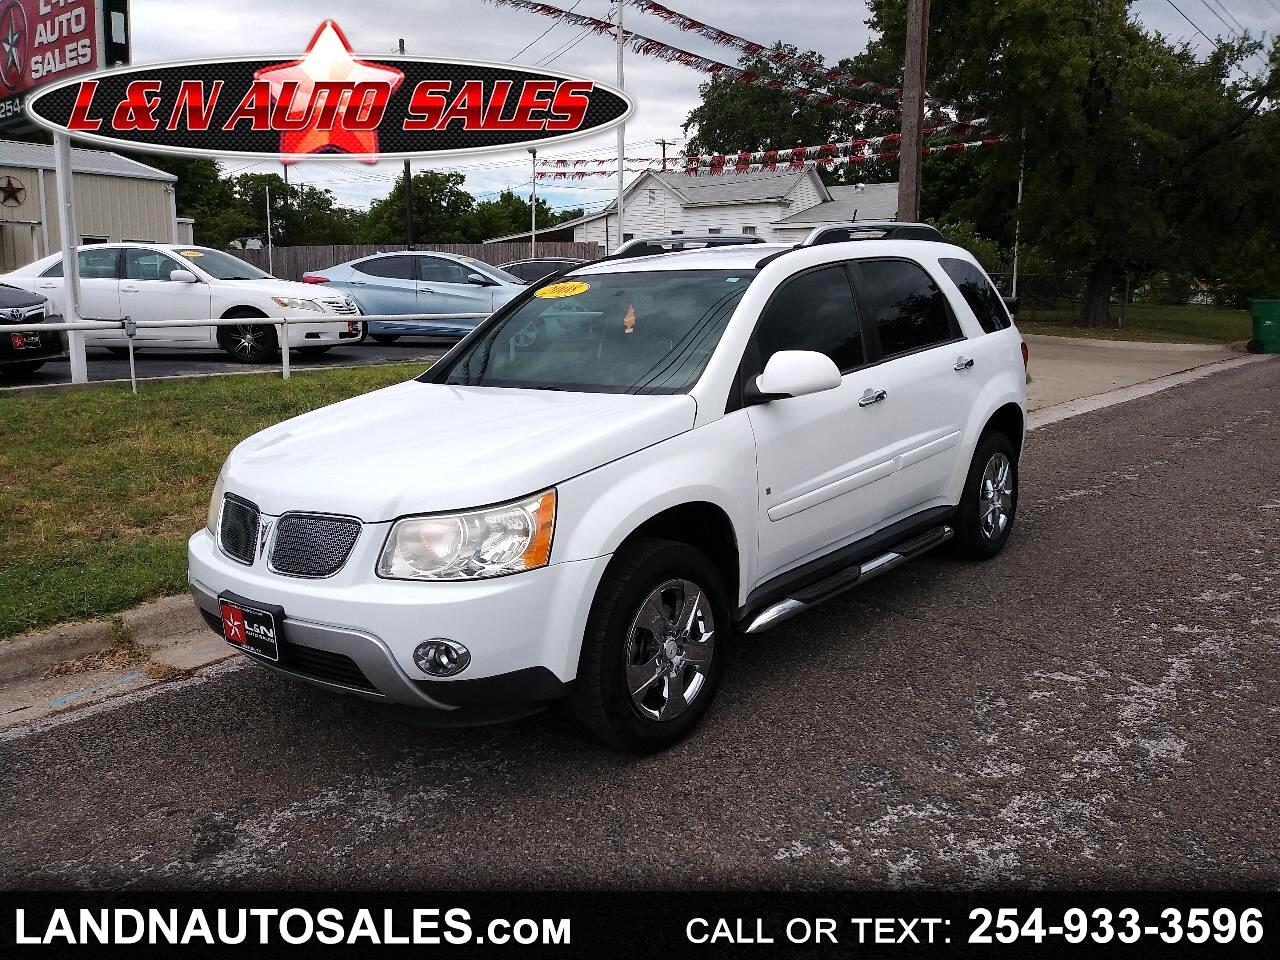 Pontiac Torrent FWD 4dr 2008